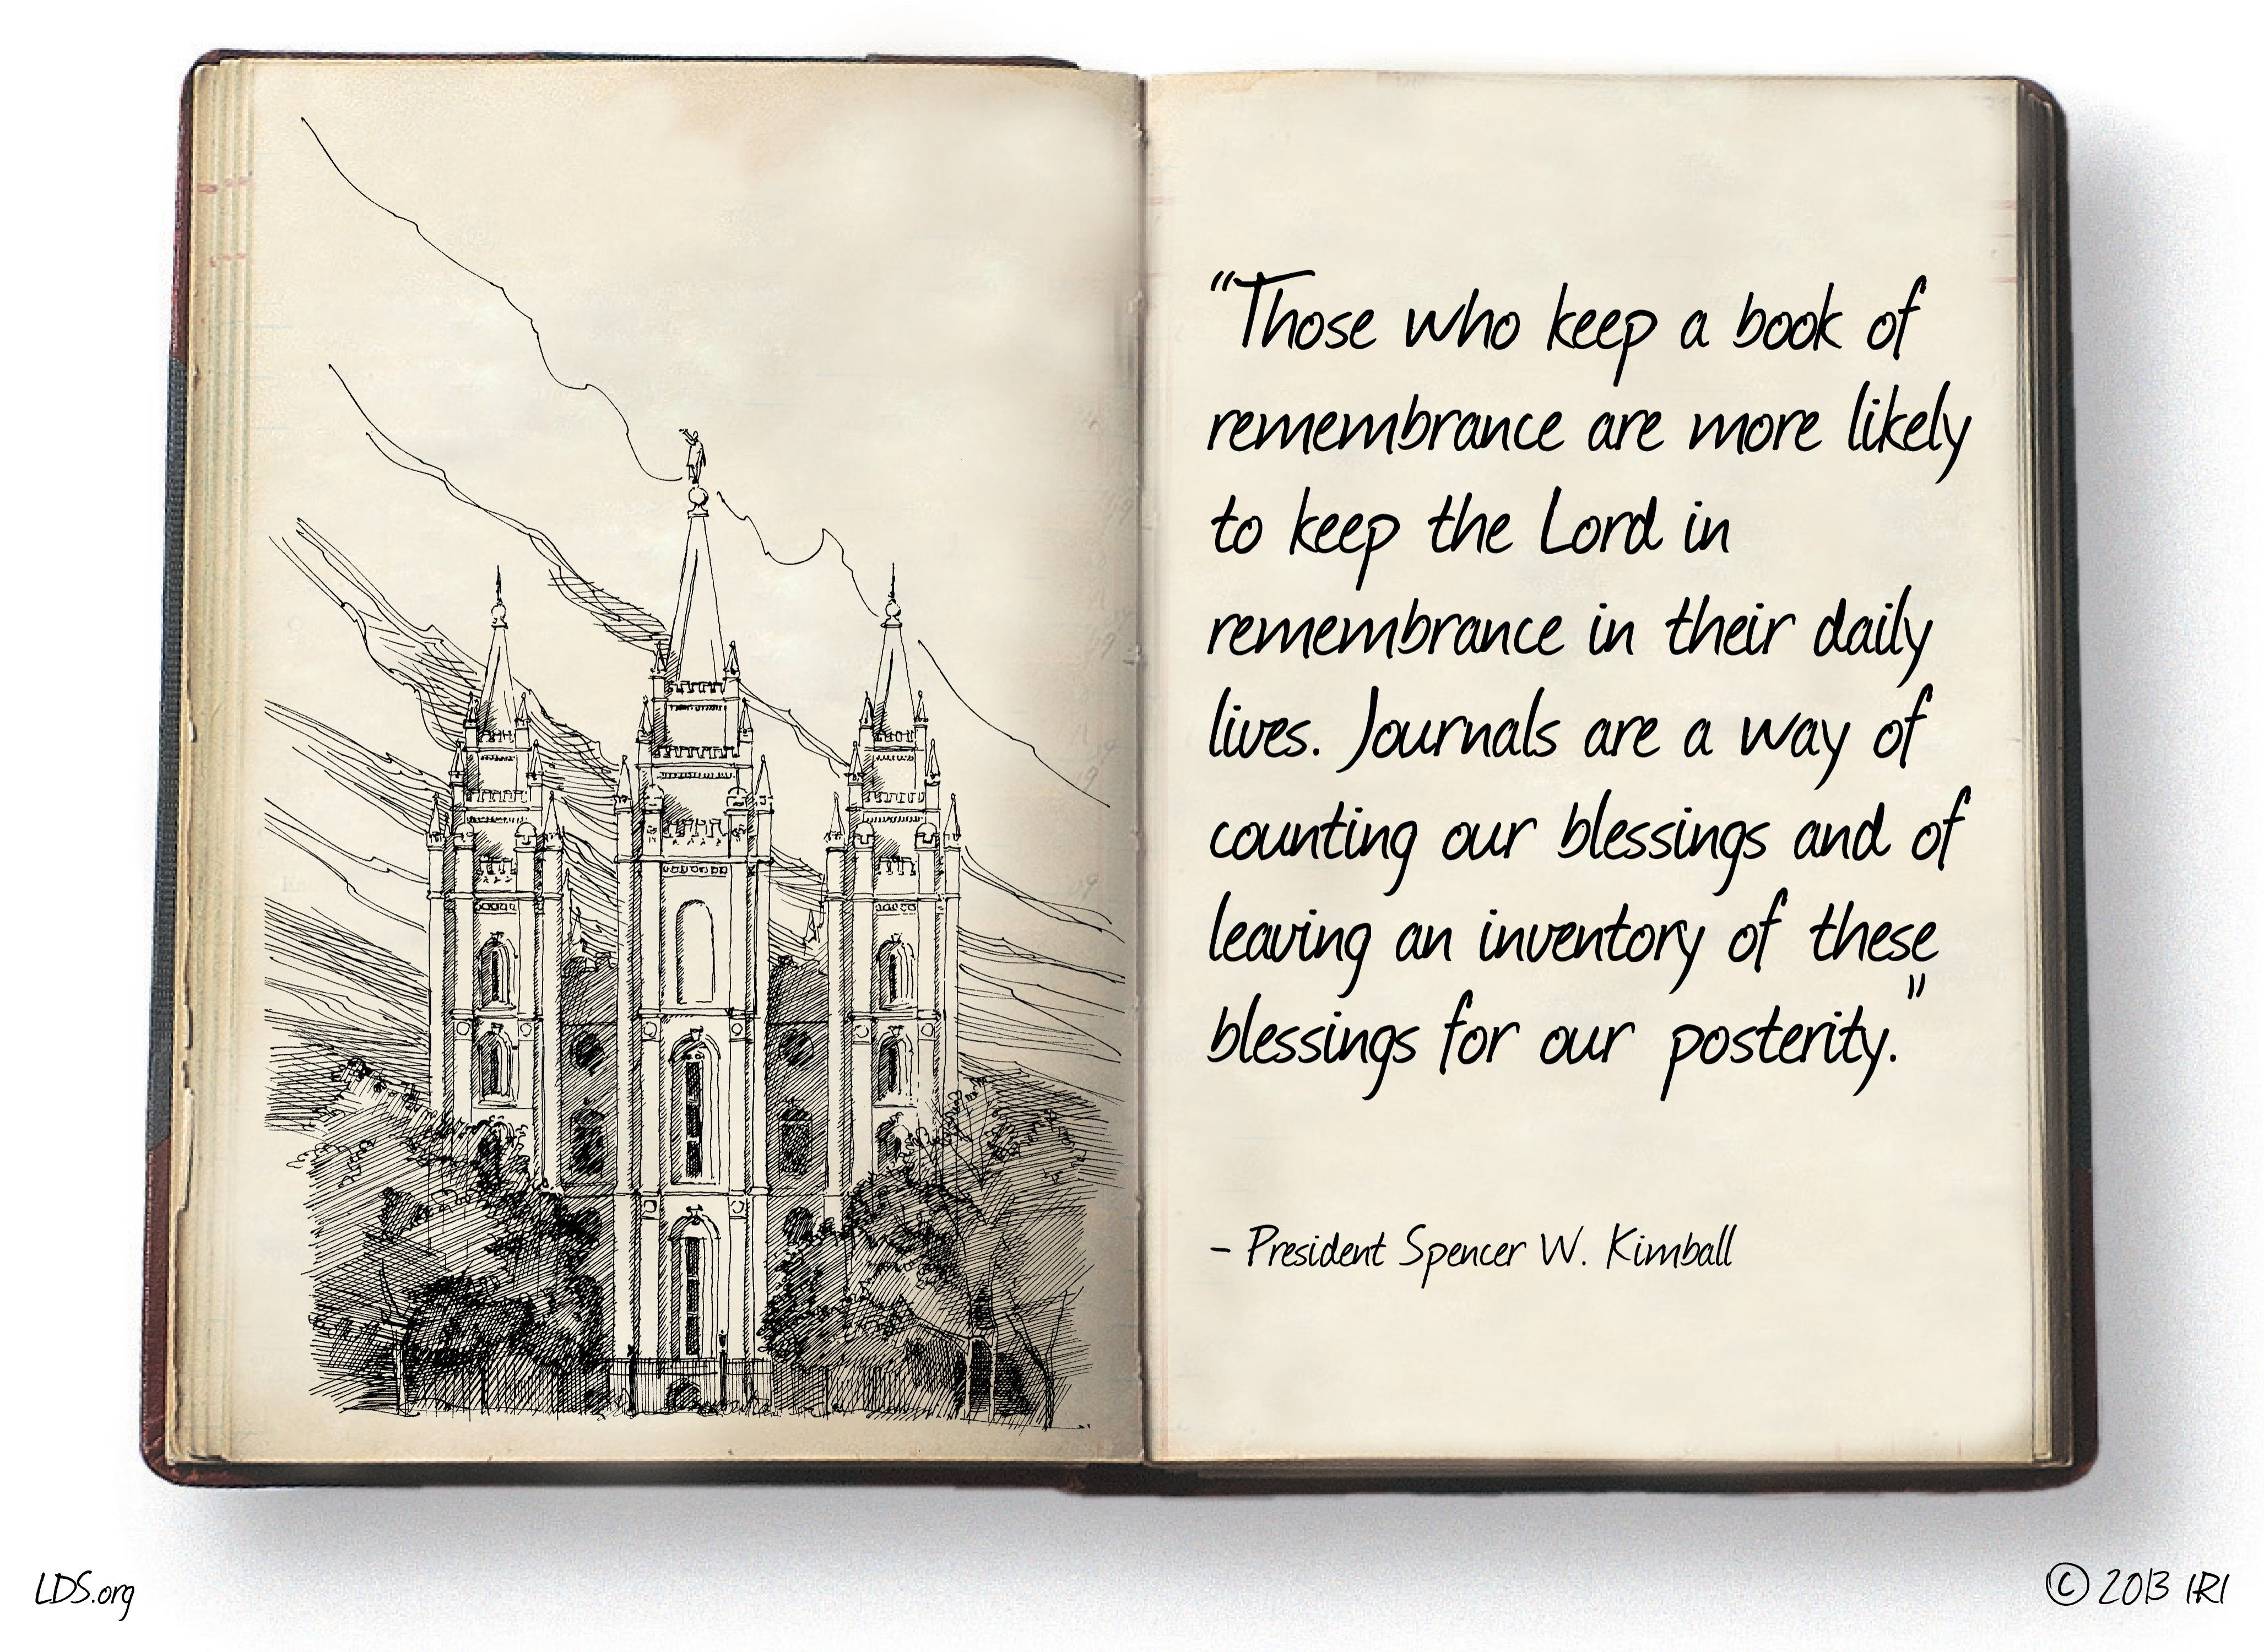 """""""Those who keep a book of remembrance are more likely to keep the Lord in remembrance in their daily lives. Journals are a way of counting our blessings and of leaving an inventory of these blessings for our posterity.""""—President Spencer W. Kimball, """"Listen to the Prophets"""""""